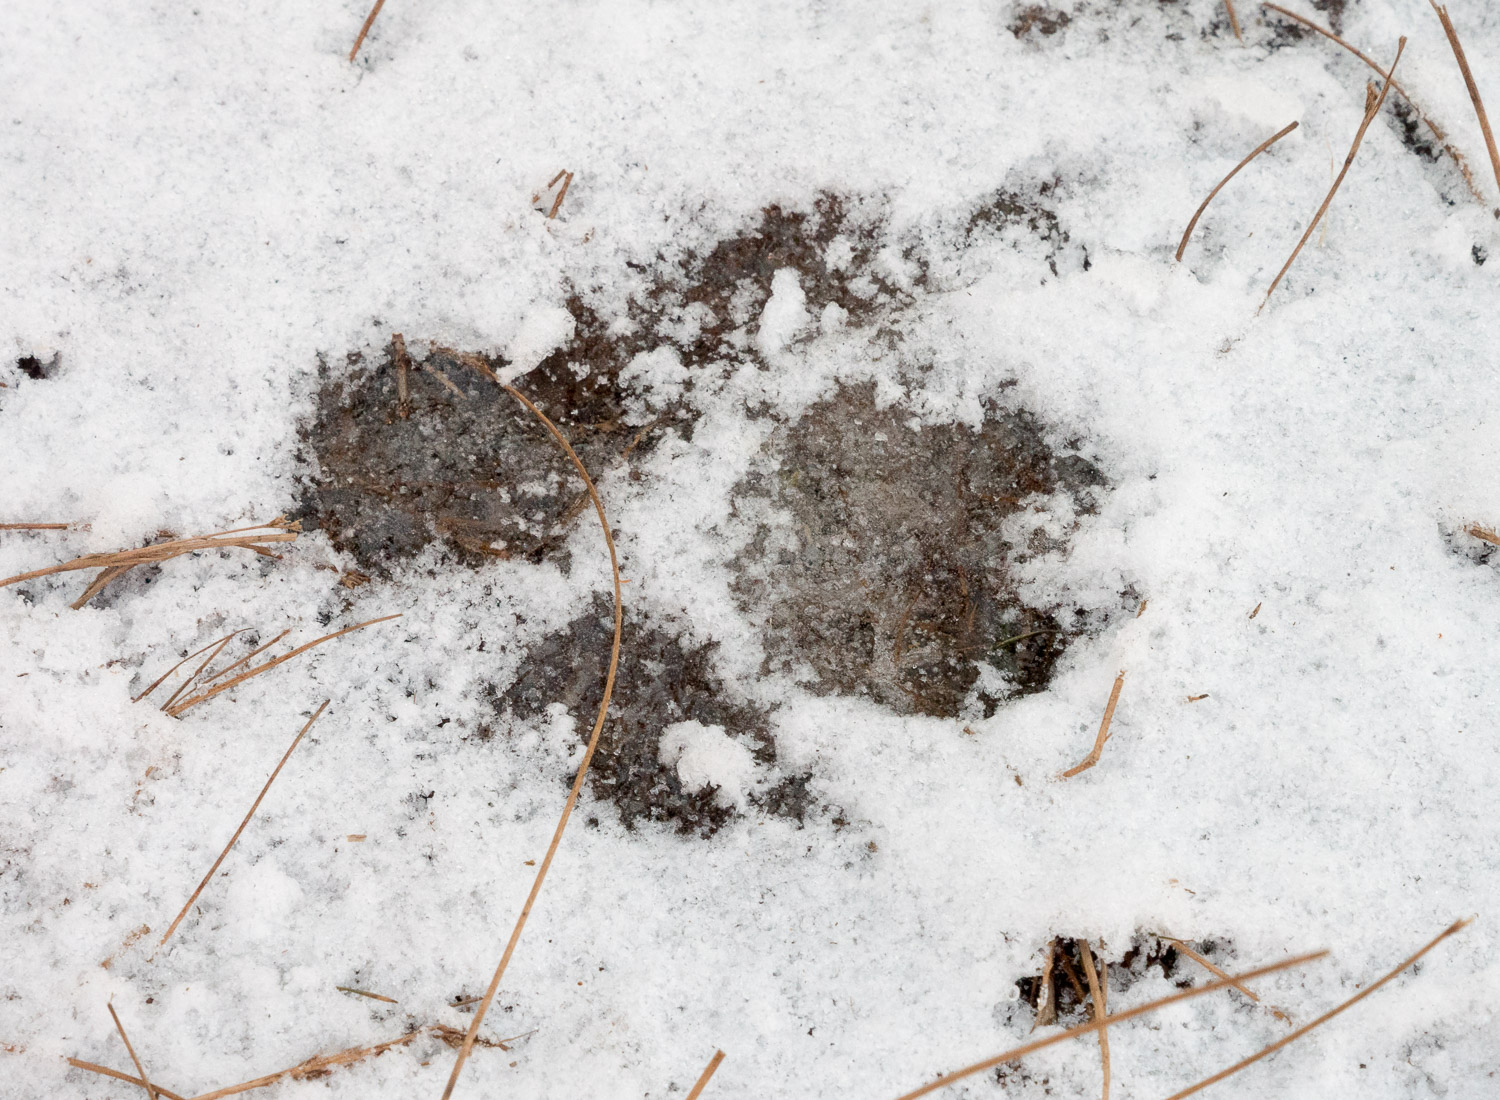 A dog track, Nick explains, is different from bobcat, since bobcat claws are withdrawn and don't leave marks.